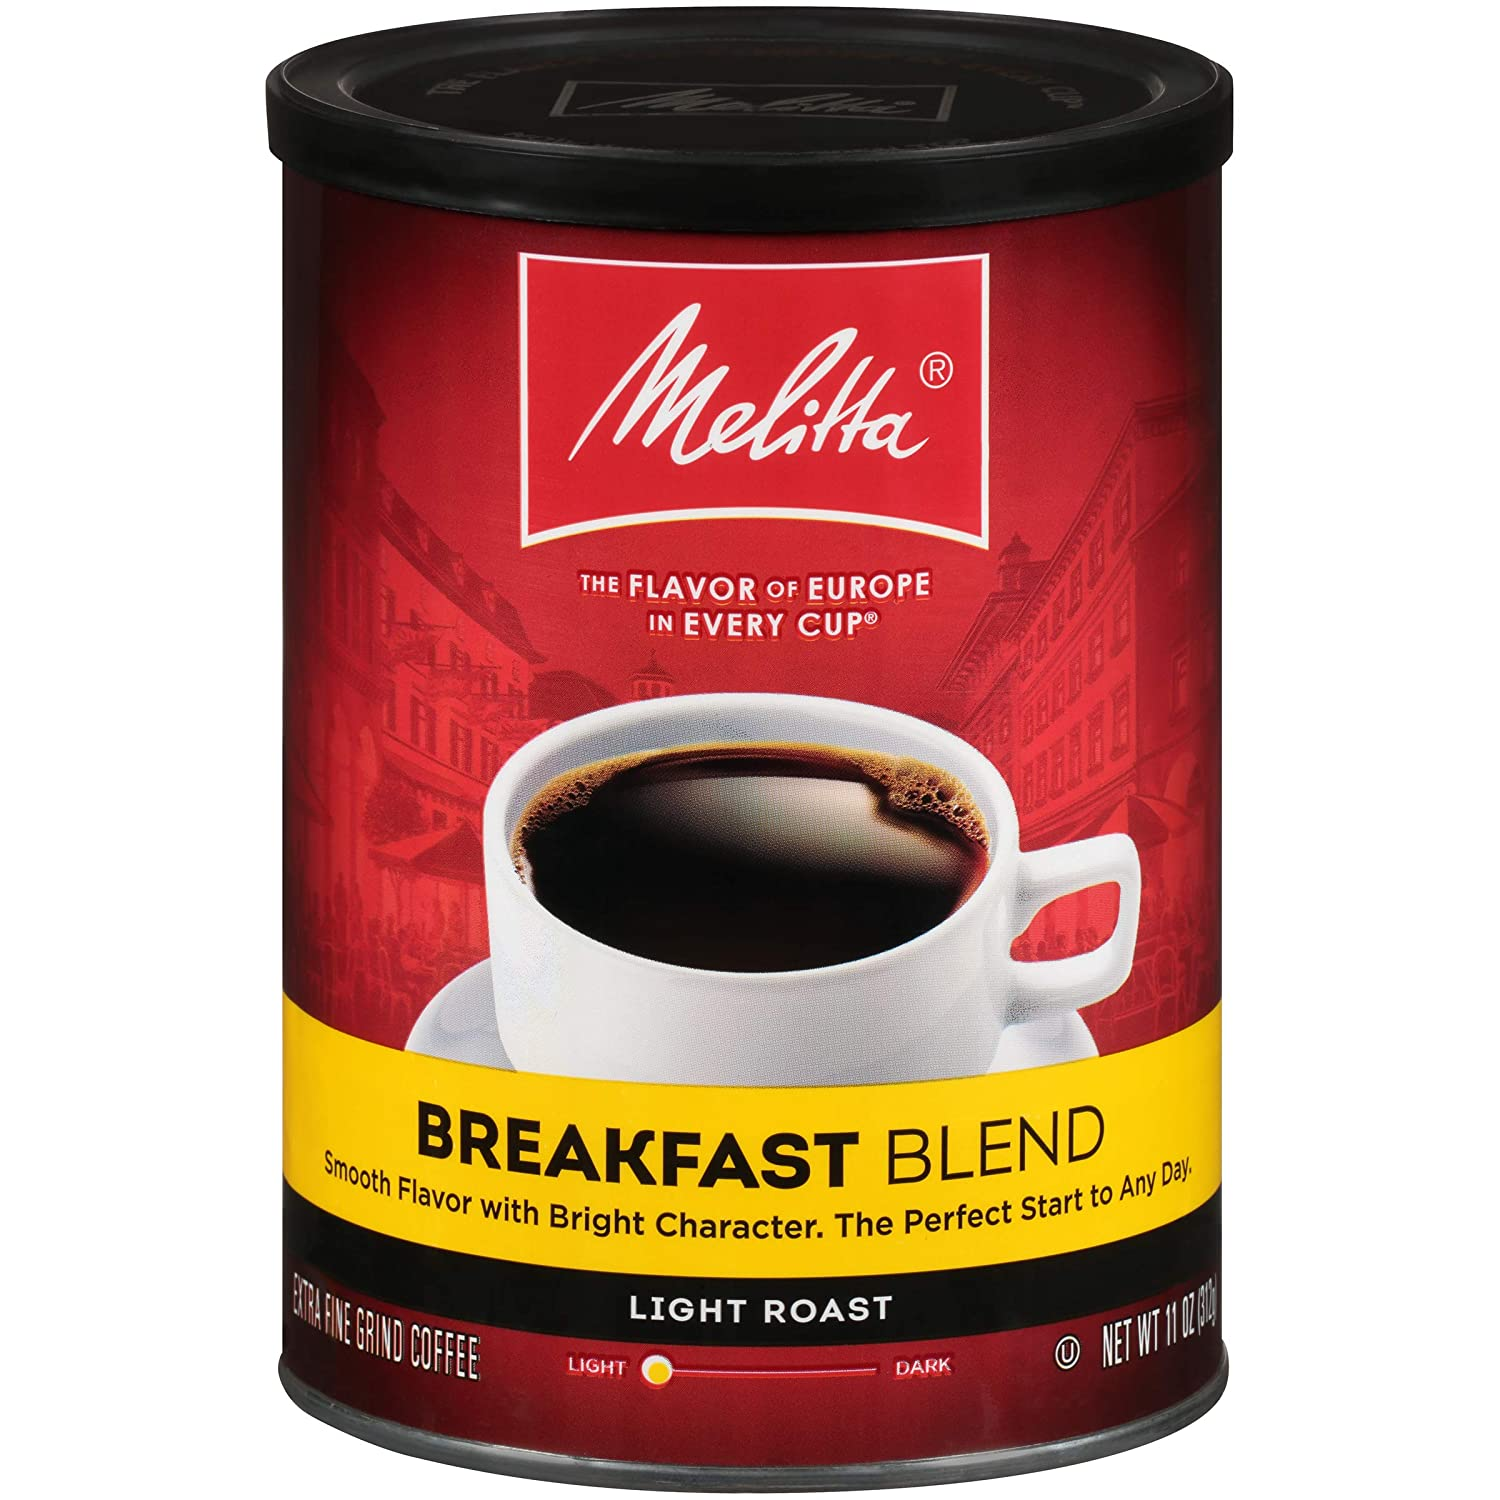 Melitta Breakfast Blend Coffee, Light Roast, Extra Fine Grind, 11 Ounce Can